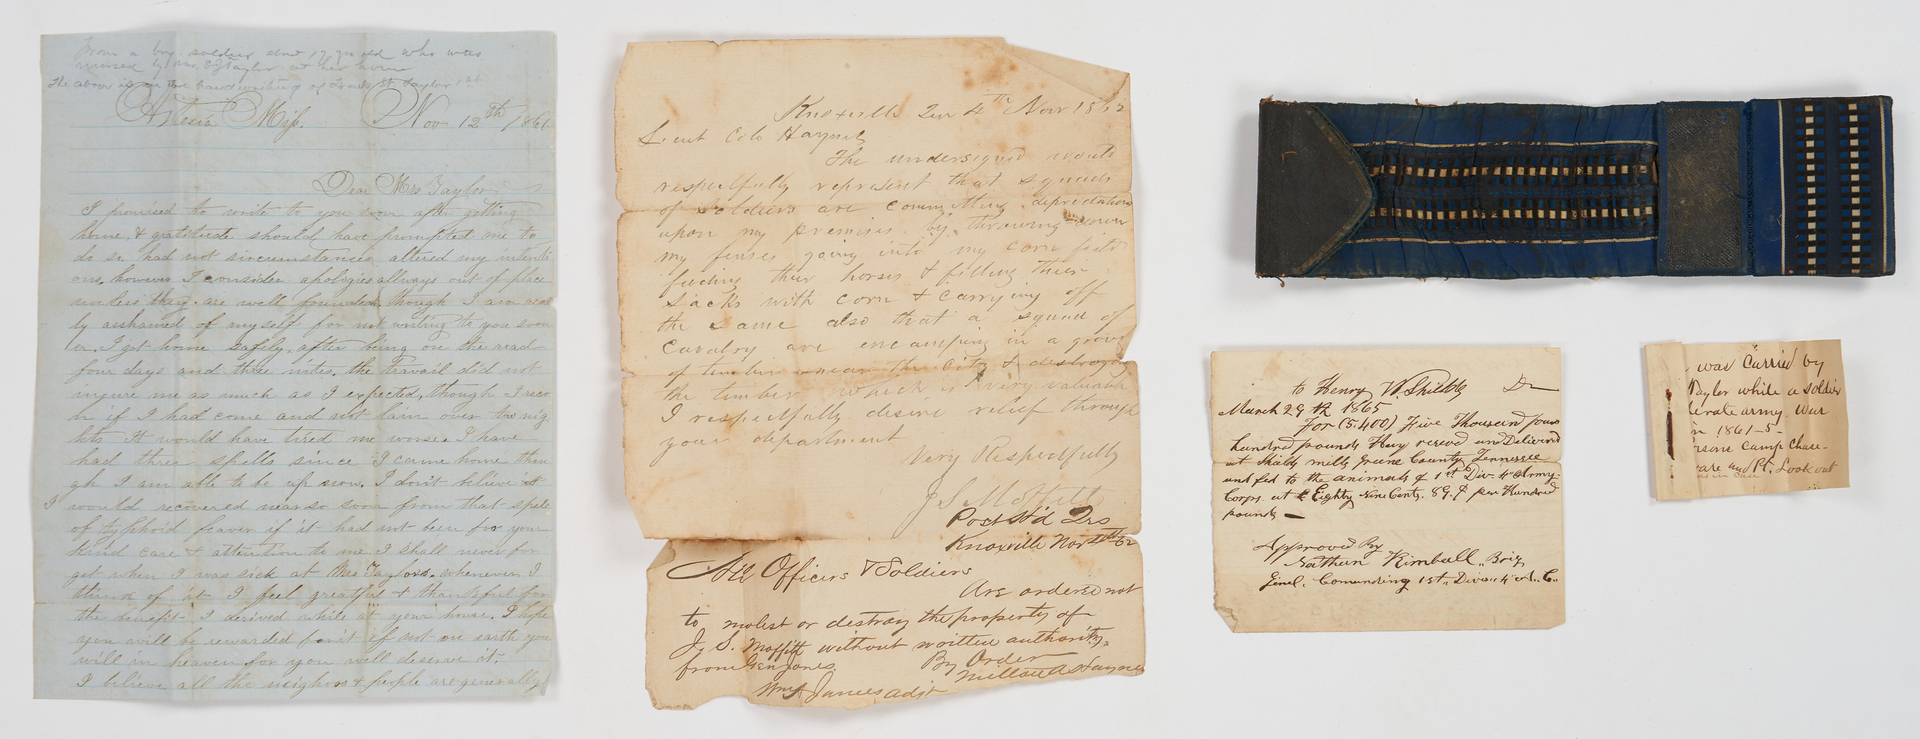 Lot 718: Civil War Feamster/Taylor Family Archive, 8 items